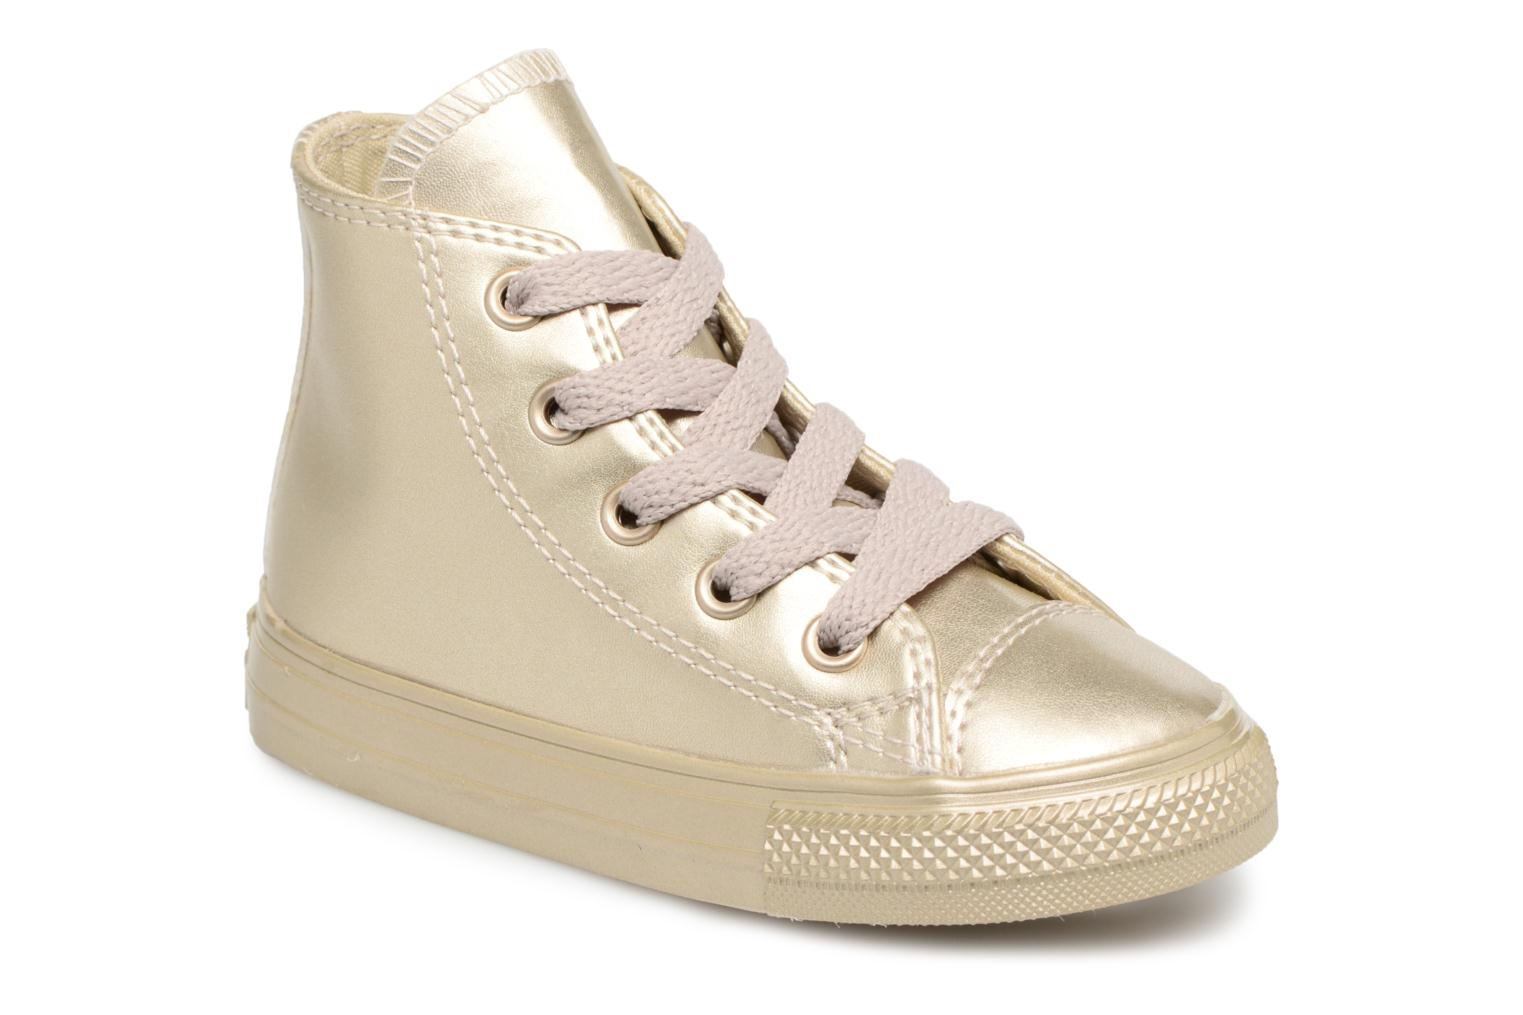 CTAS HI LIGHT LIGHT GOLD/LIGHT GOLD